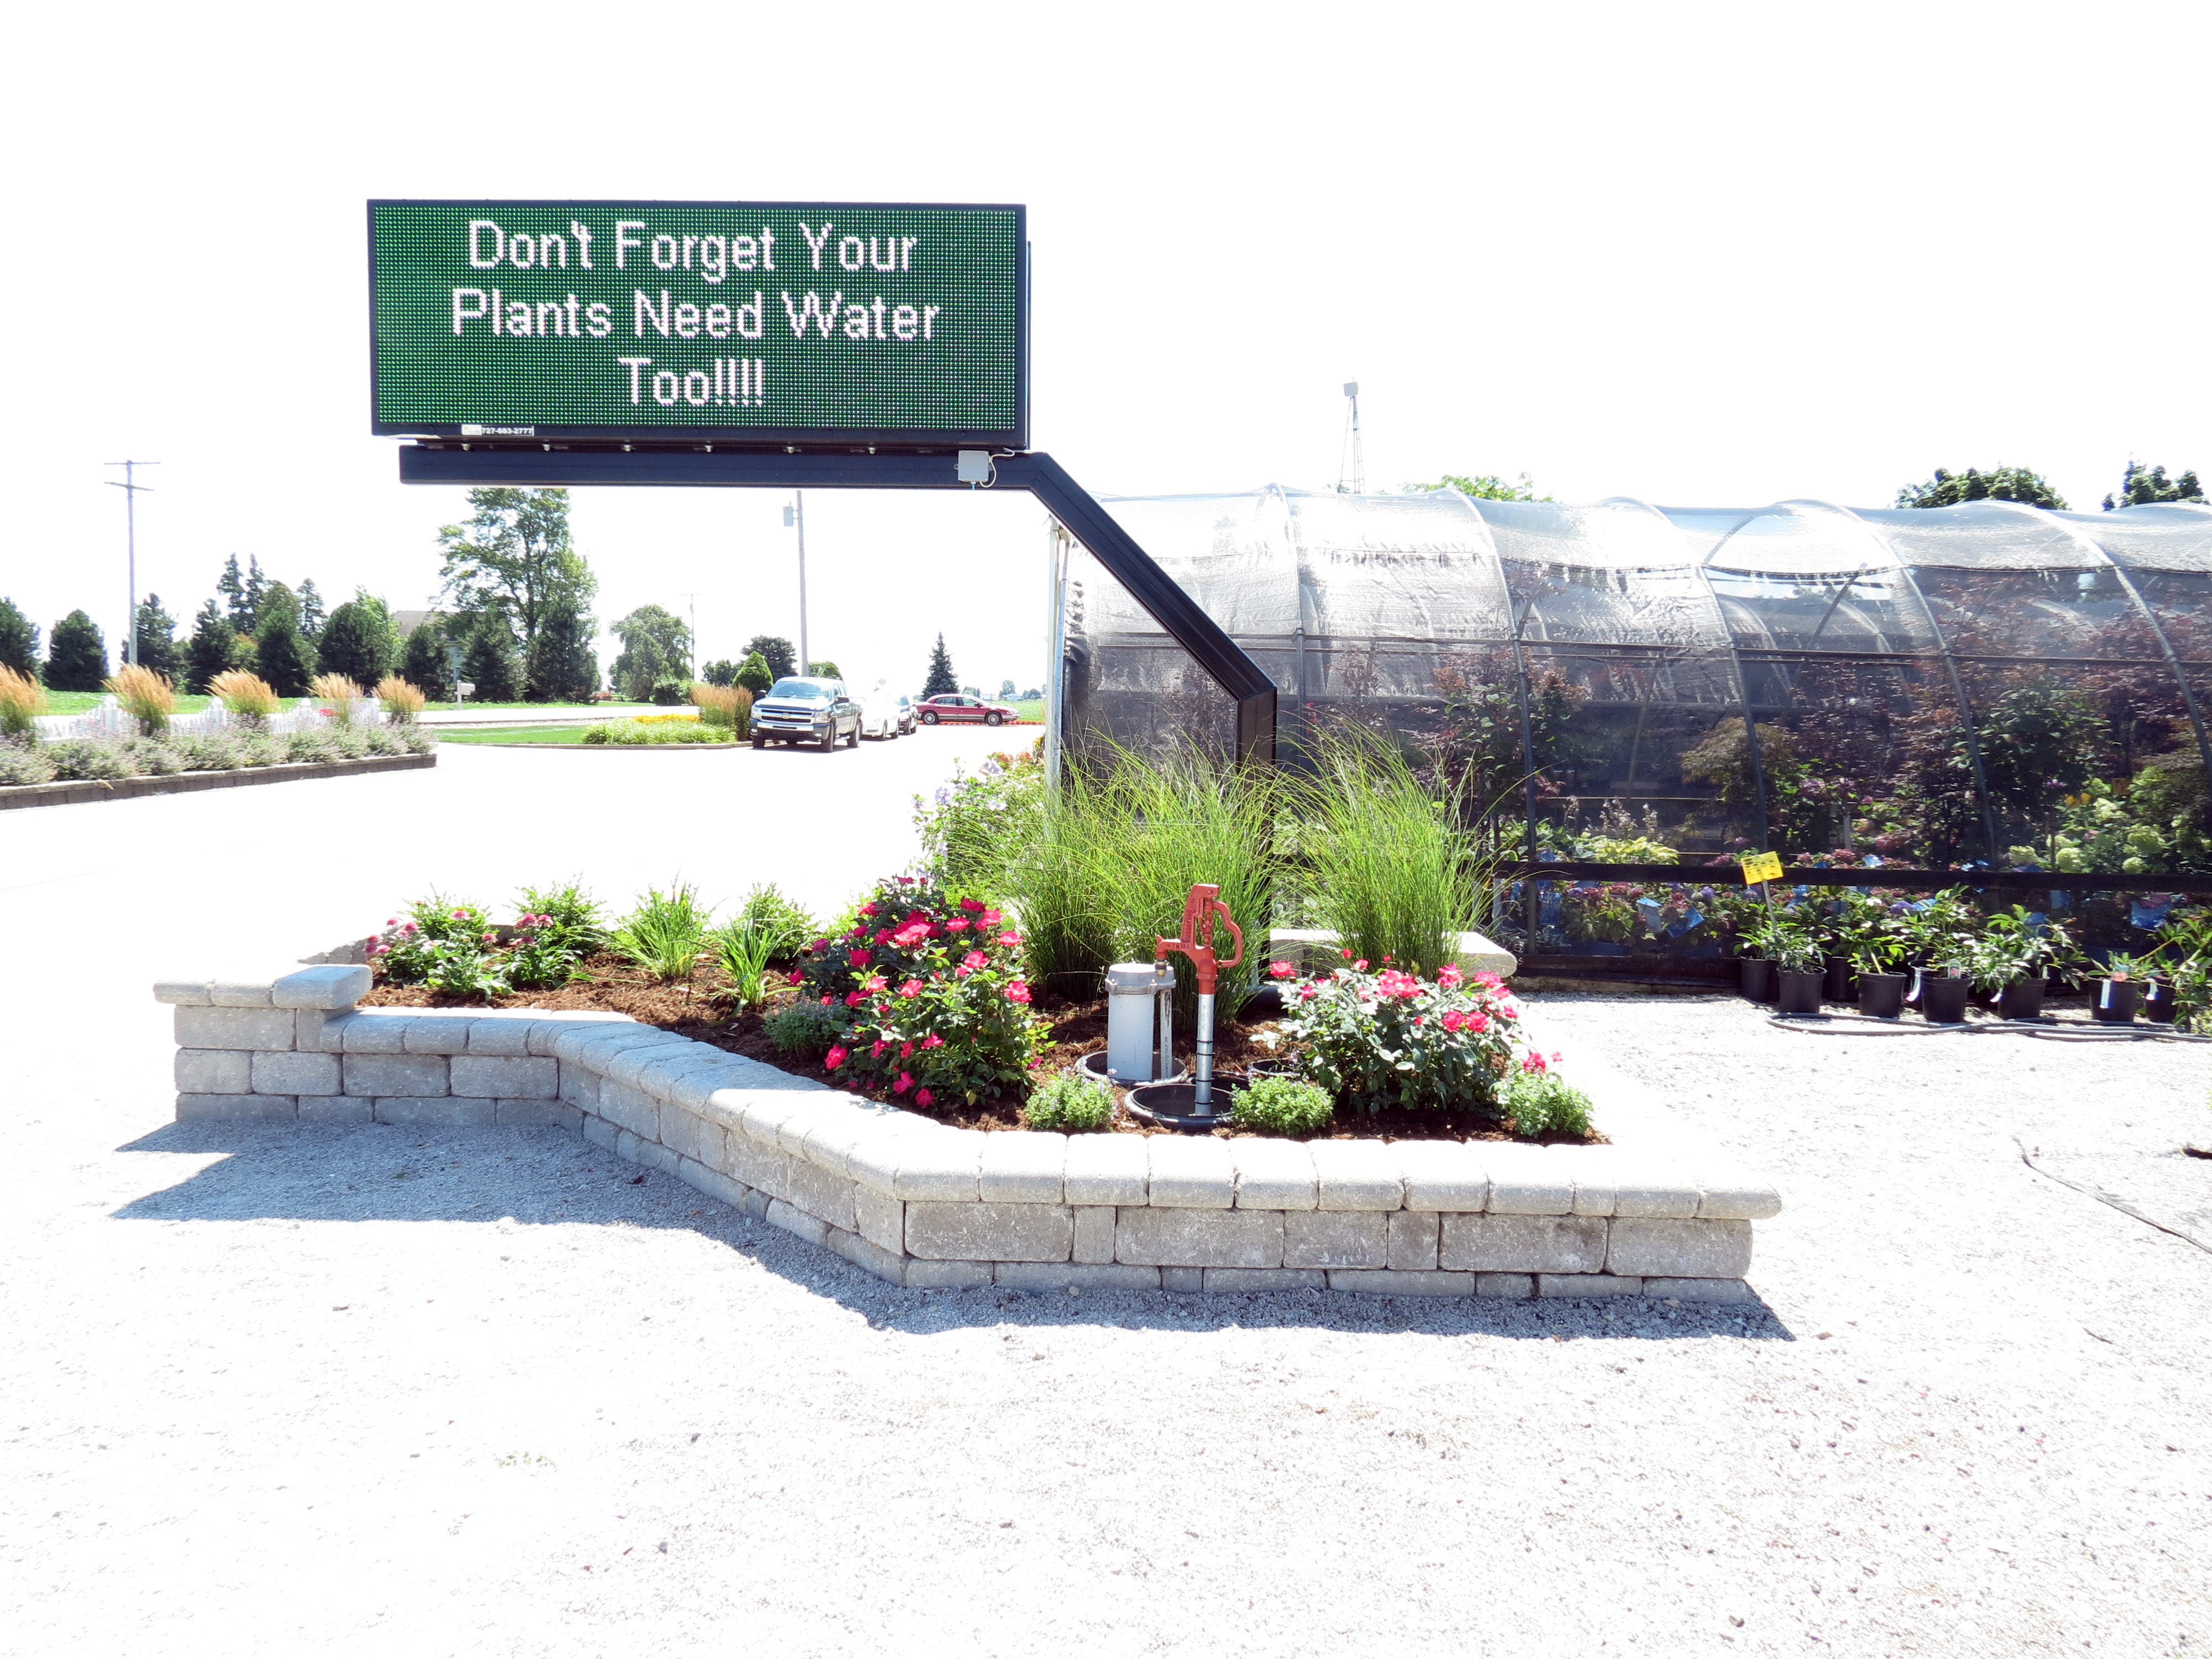 Garden center and sign